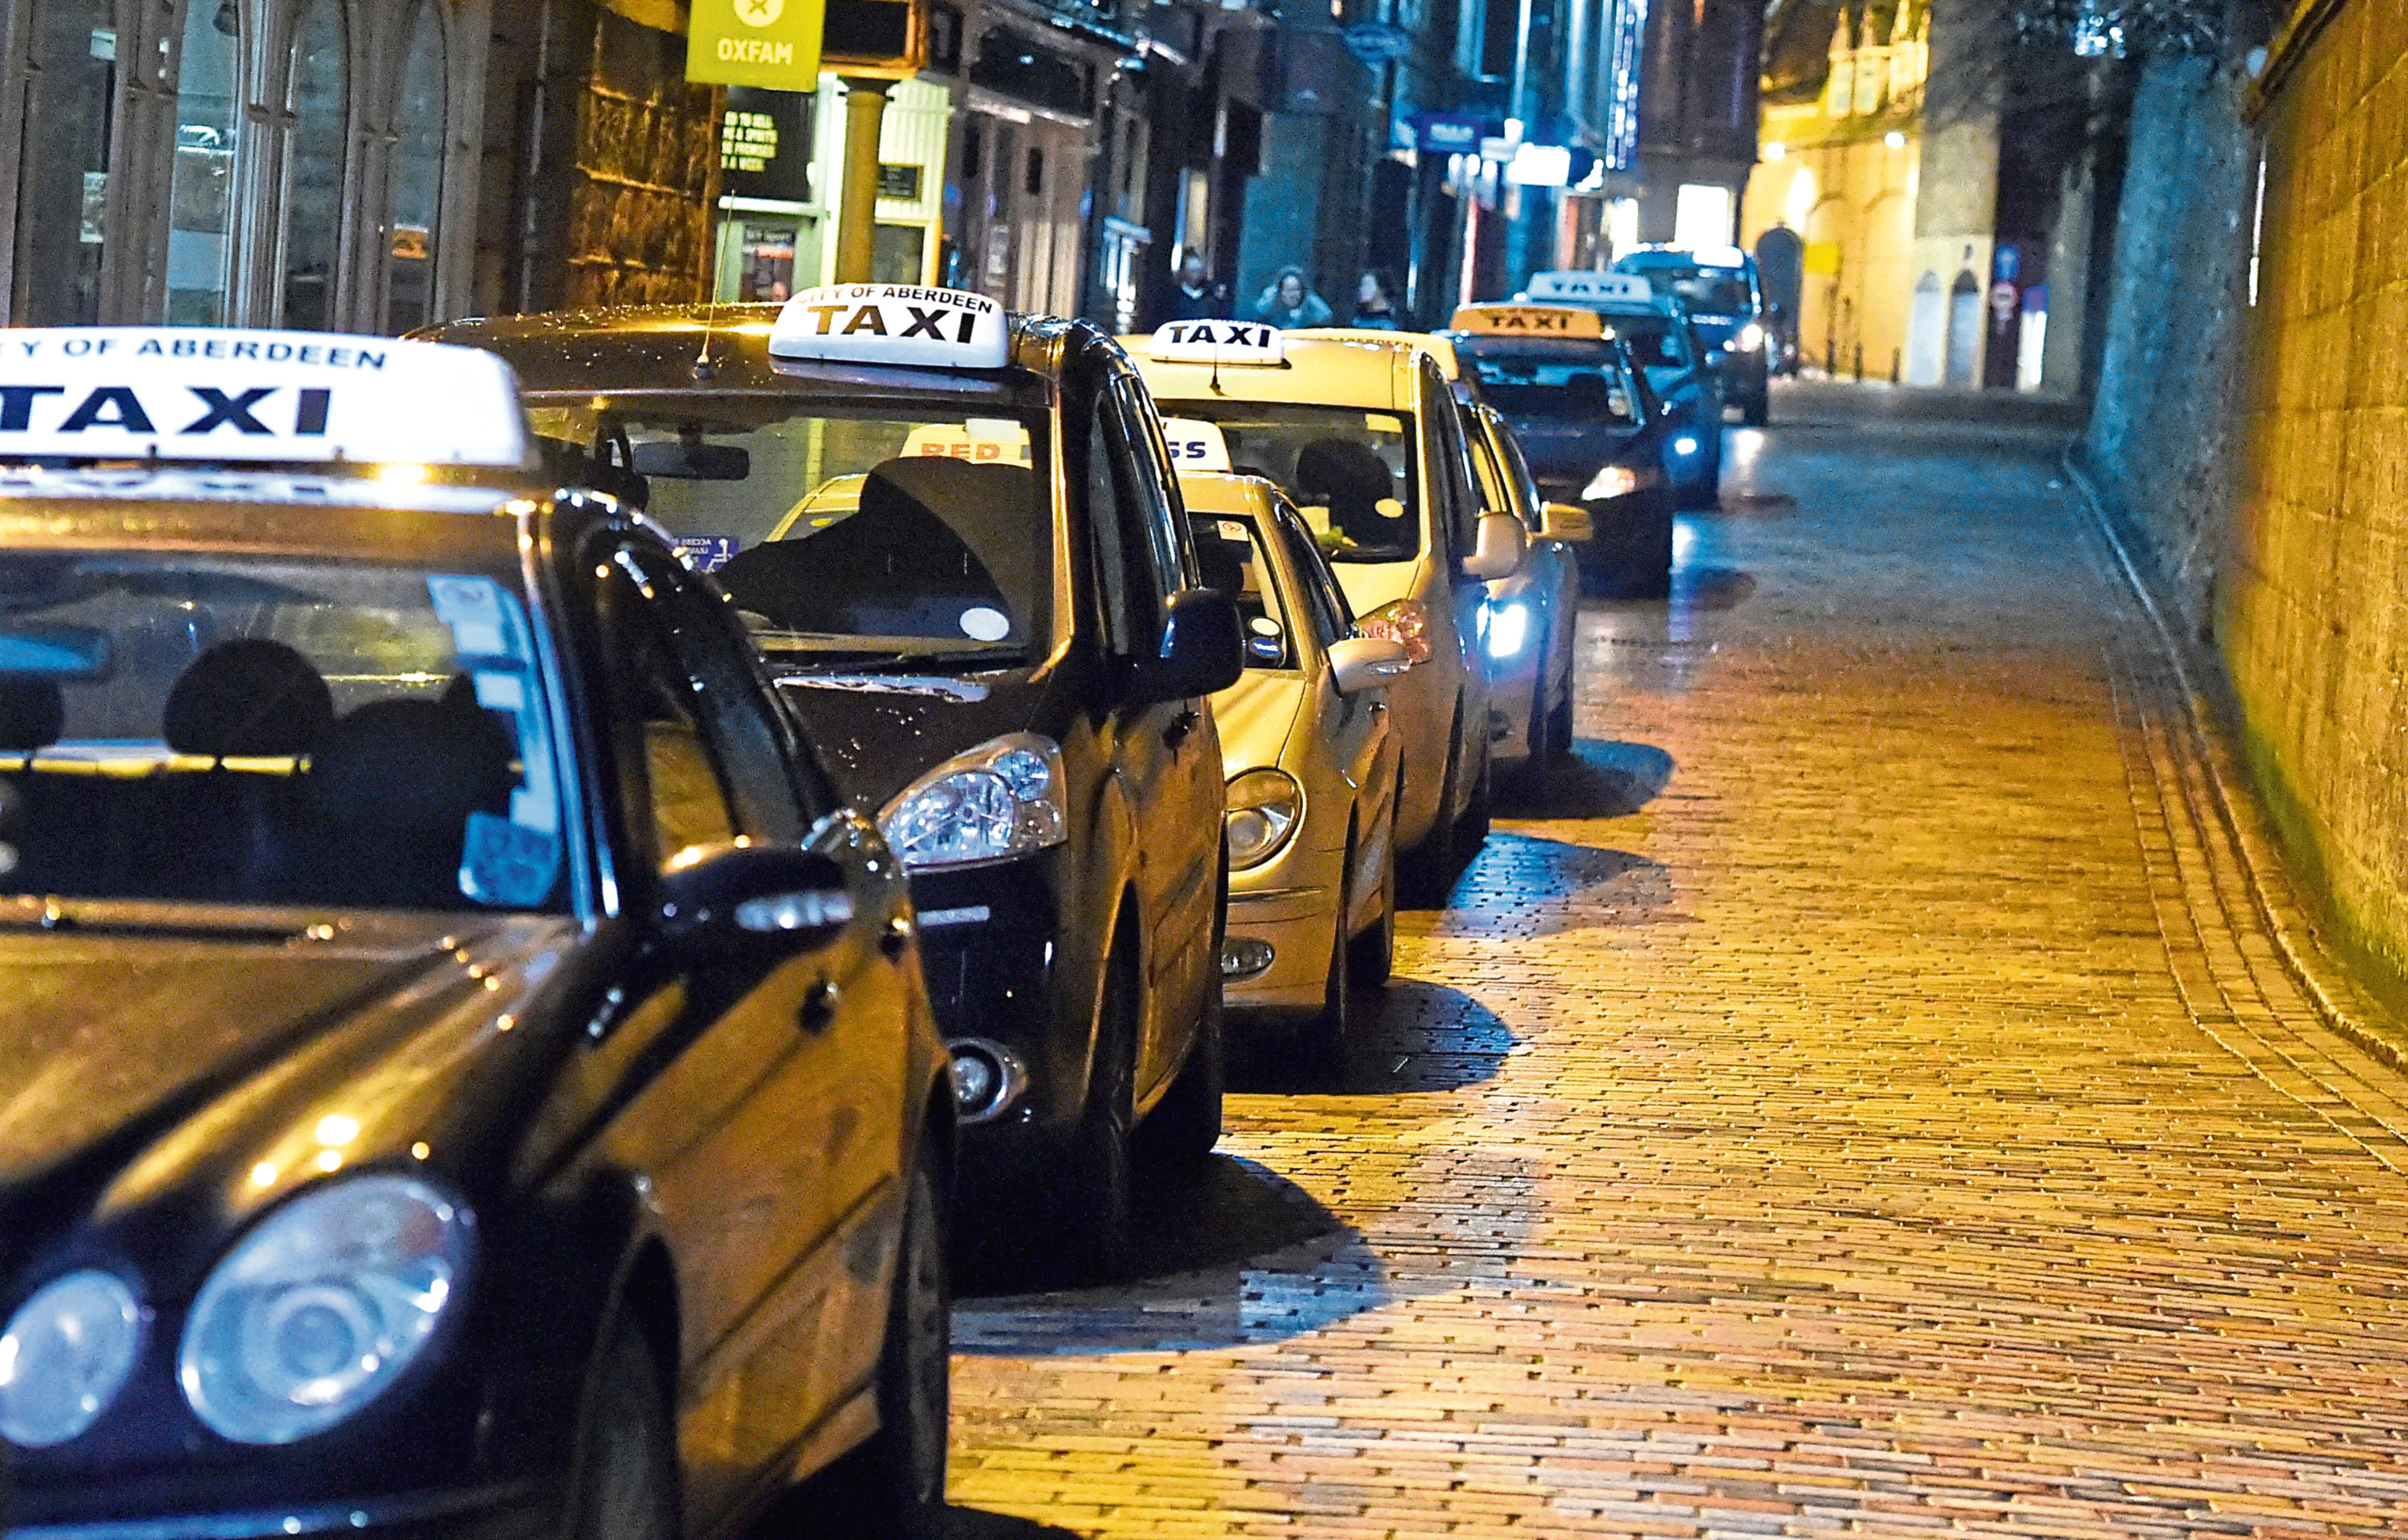 Councillors voted in favour of a taxi fares increase in the city – but not everyone was happy at the decision